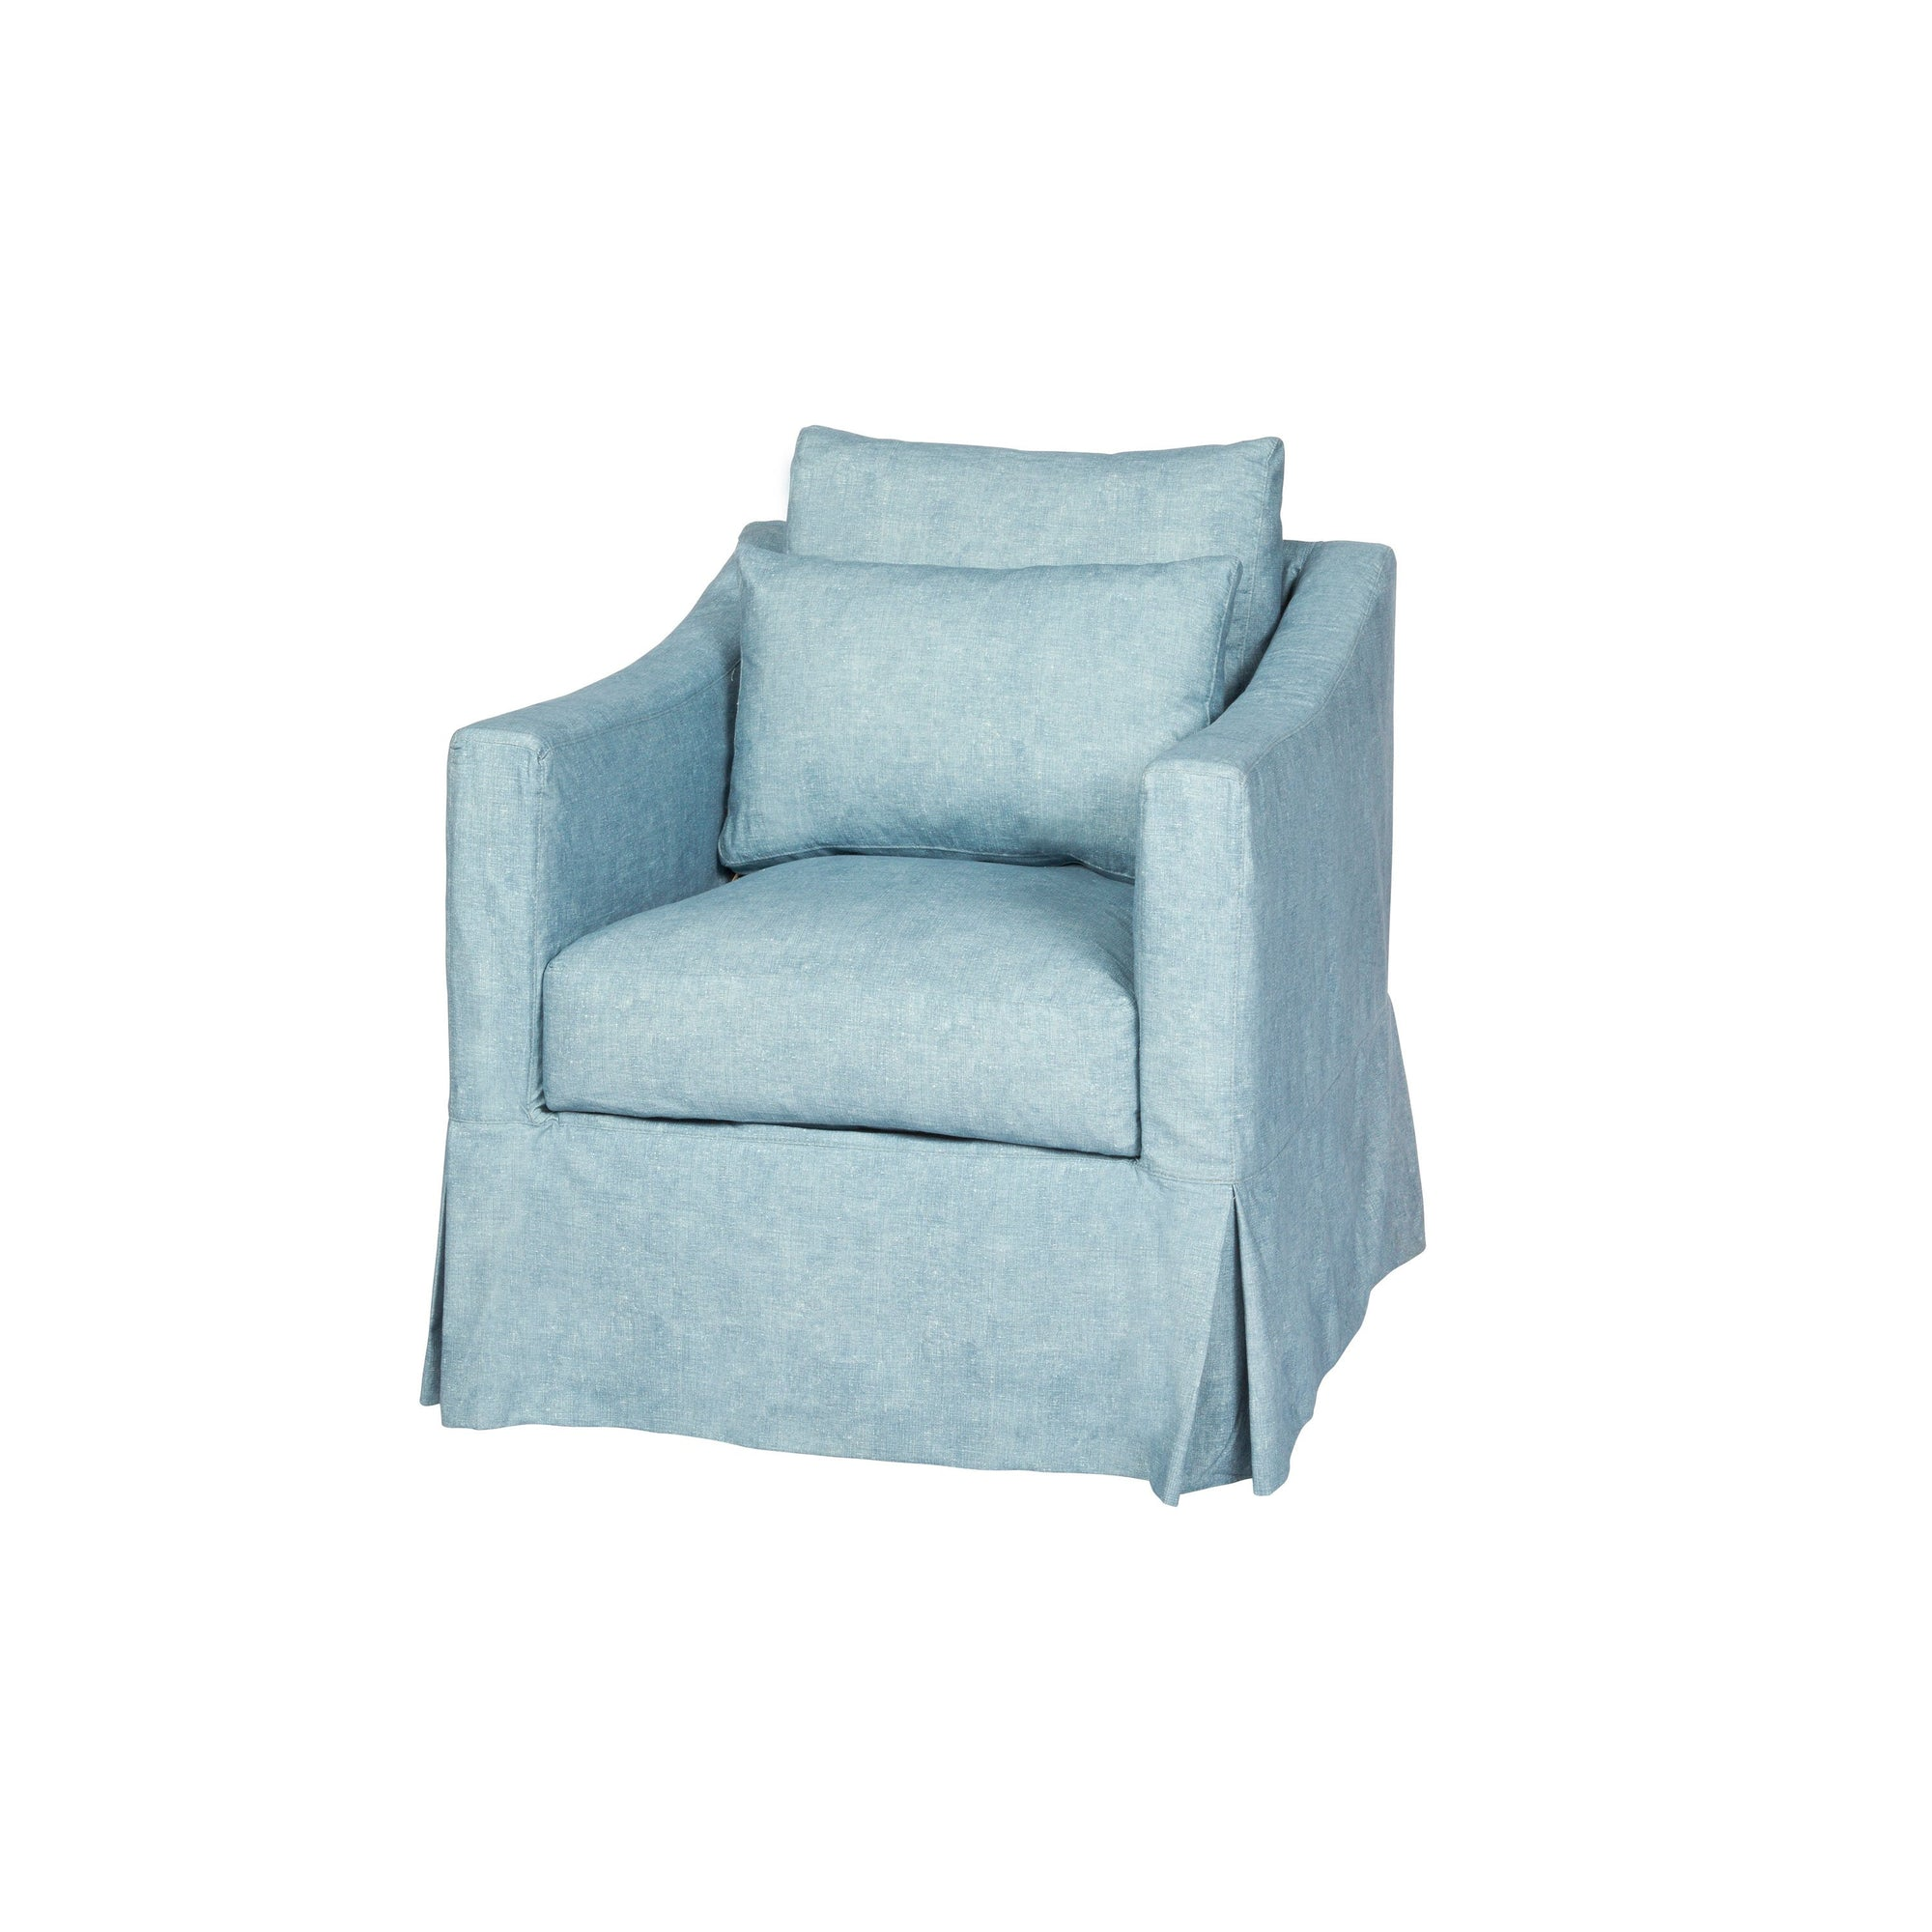 Cisco Brothers Rebecca Chairs Essentials - In Stock-Cisco Brothers-Blue Hand Home